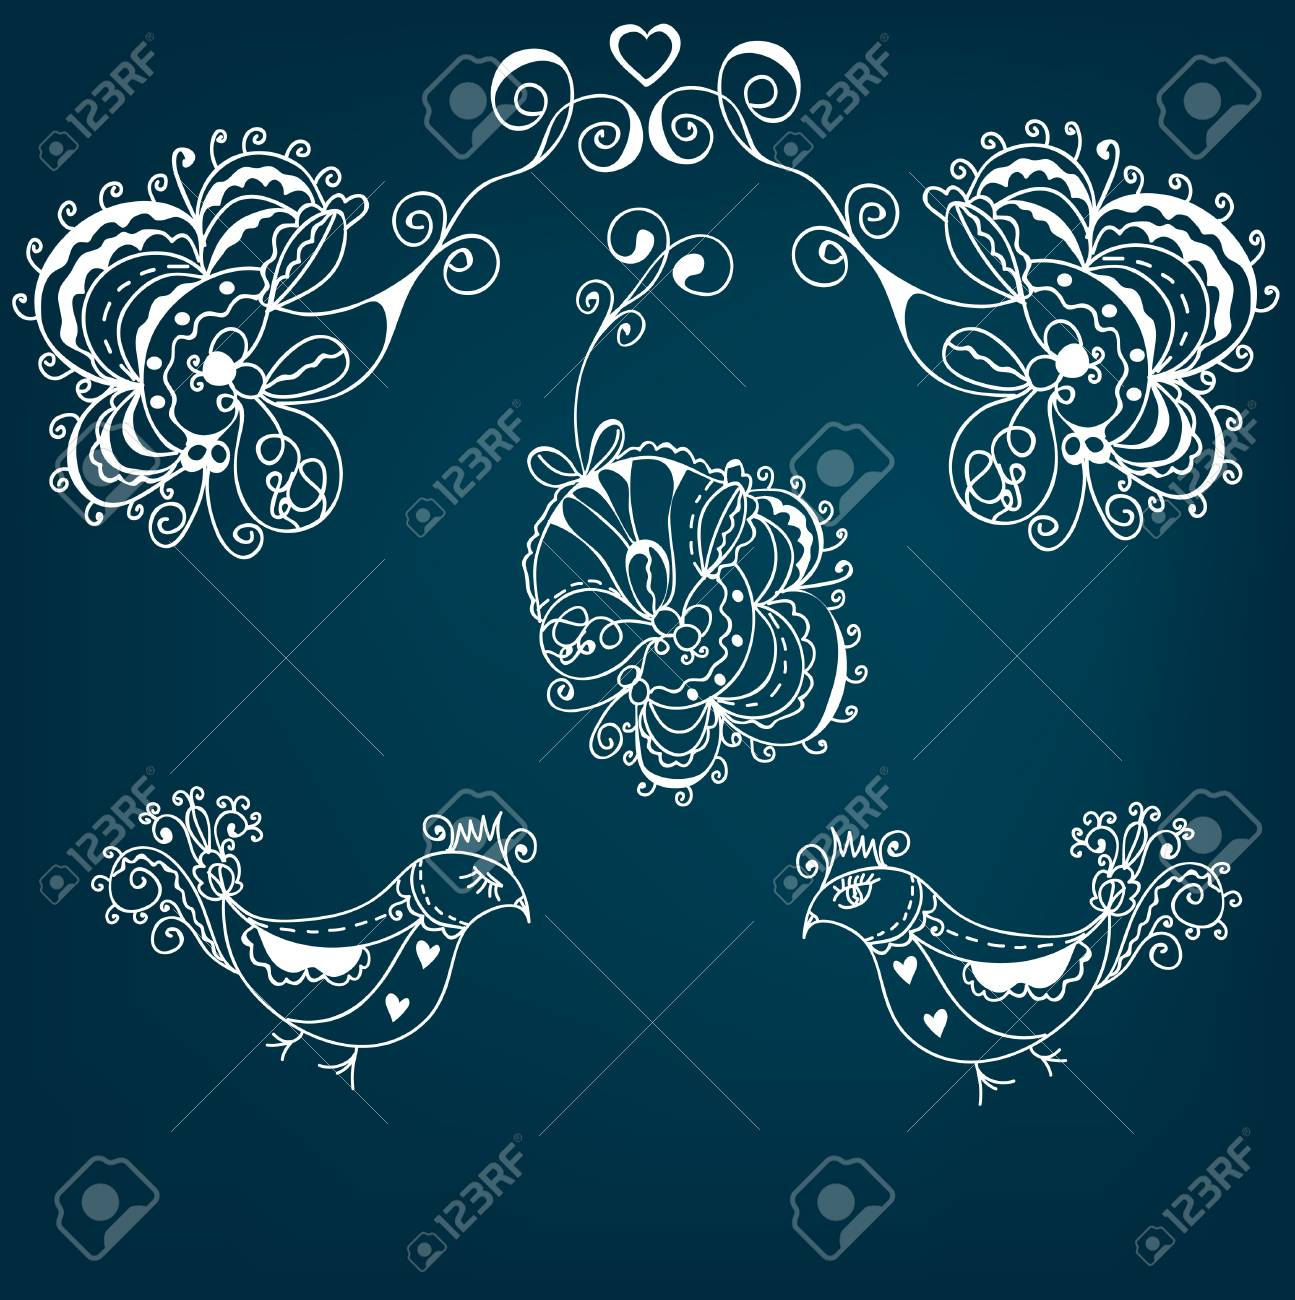 Abstract greeting floral background with bird Stock Vector - 9268587